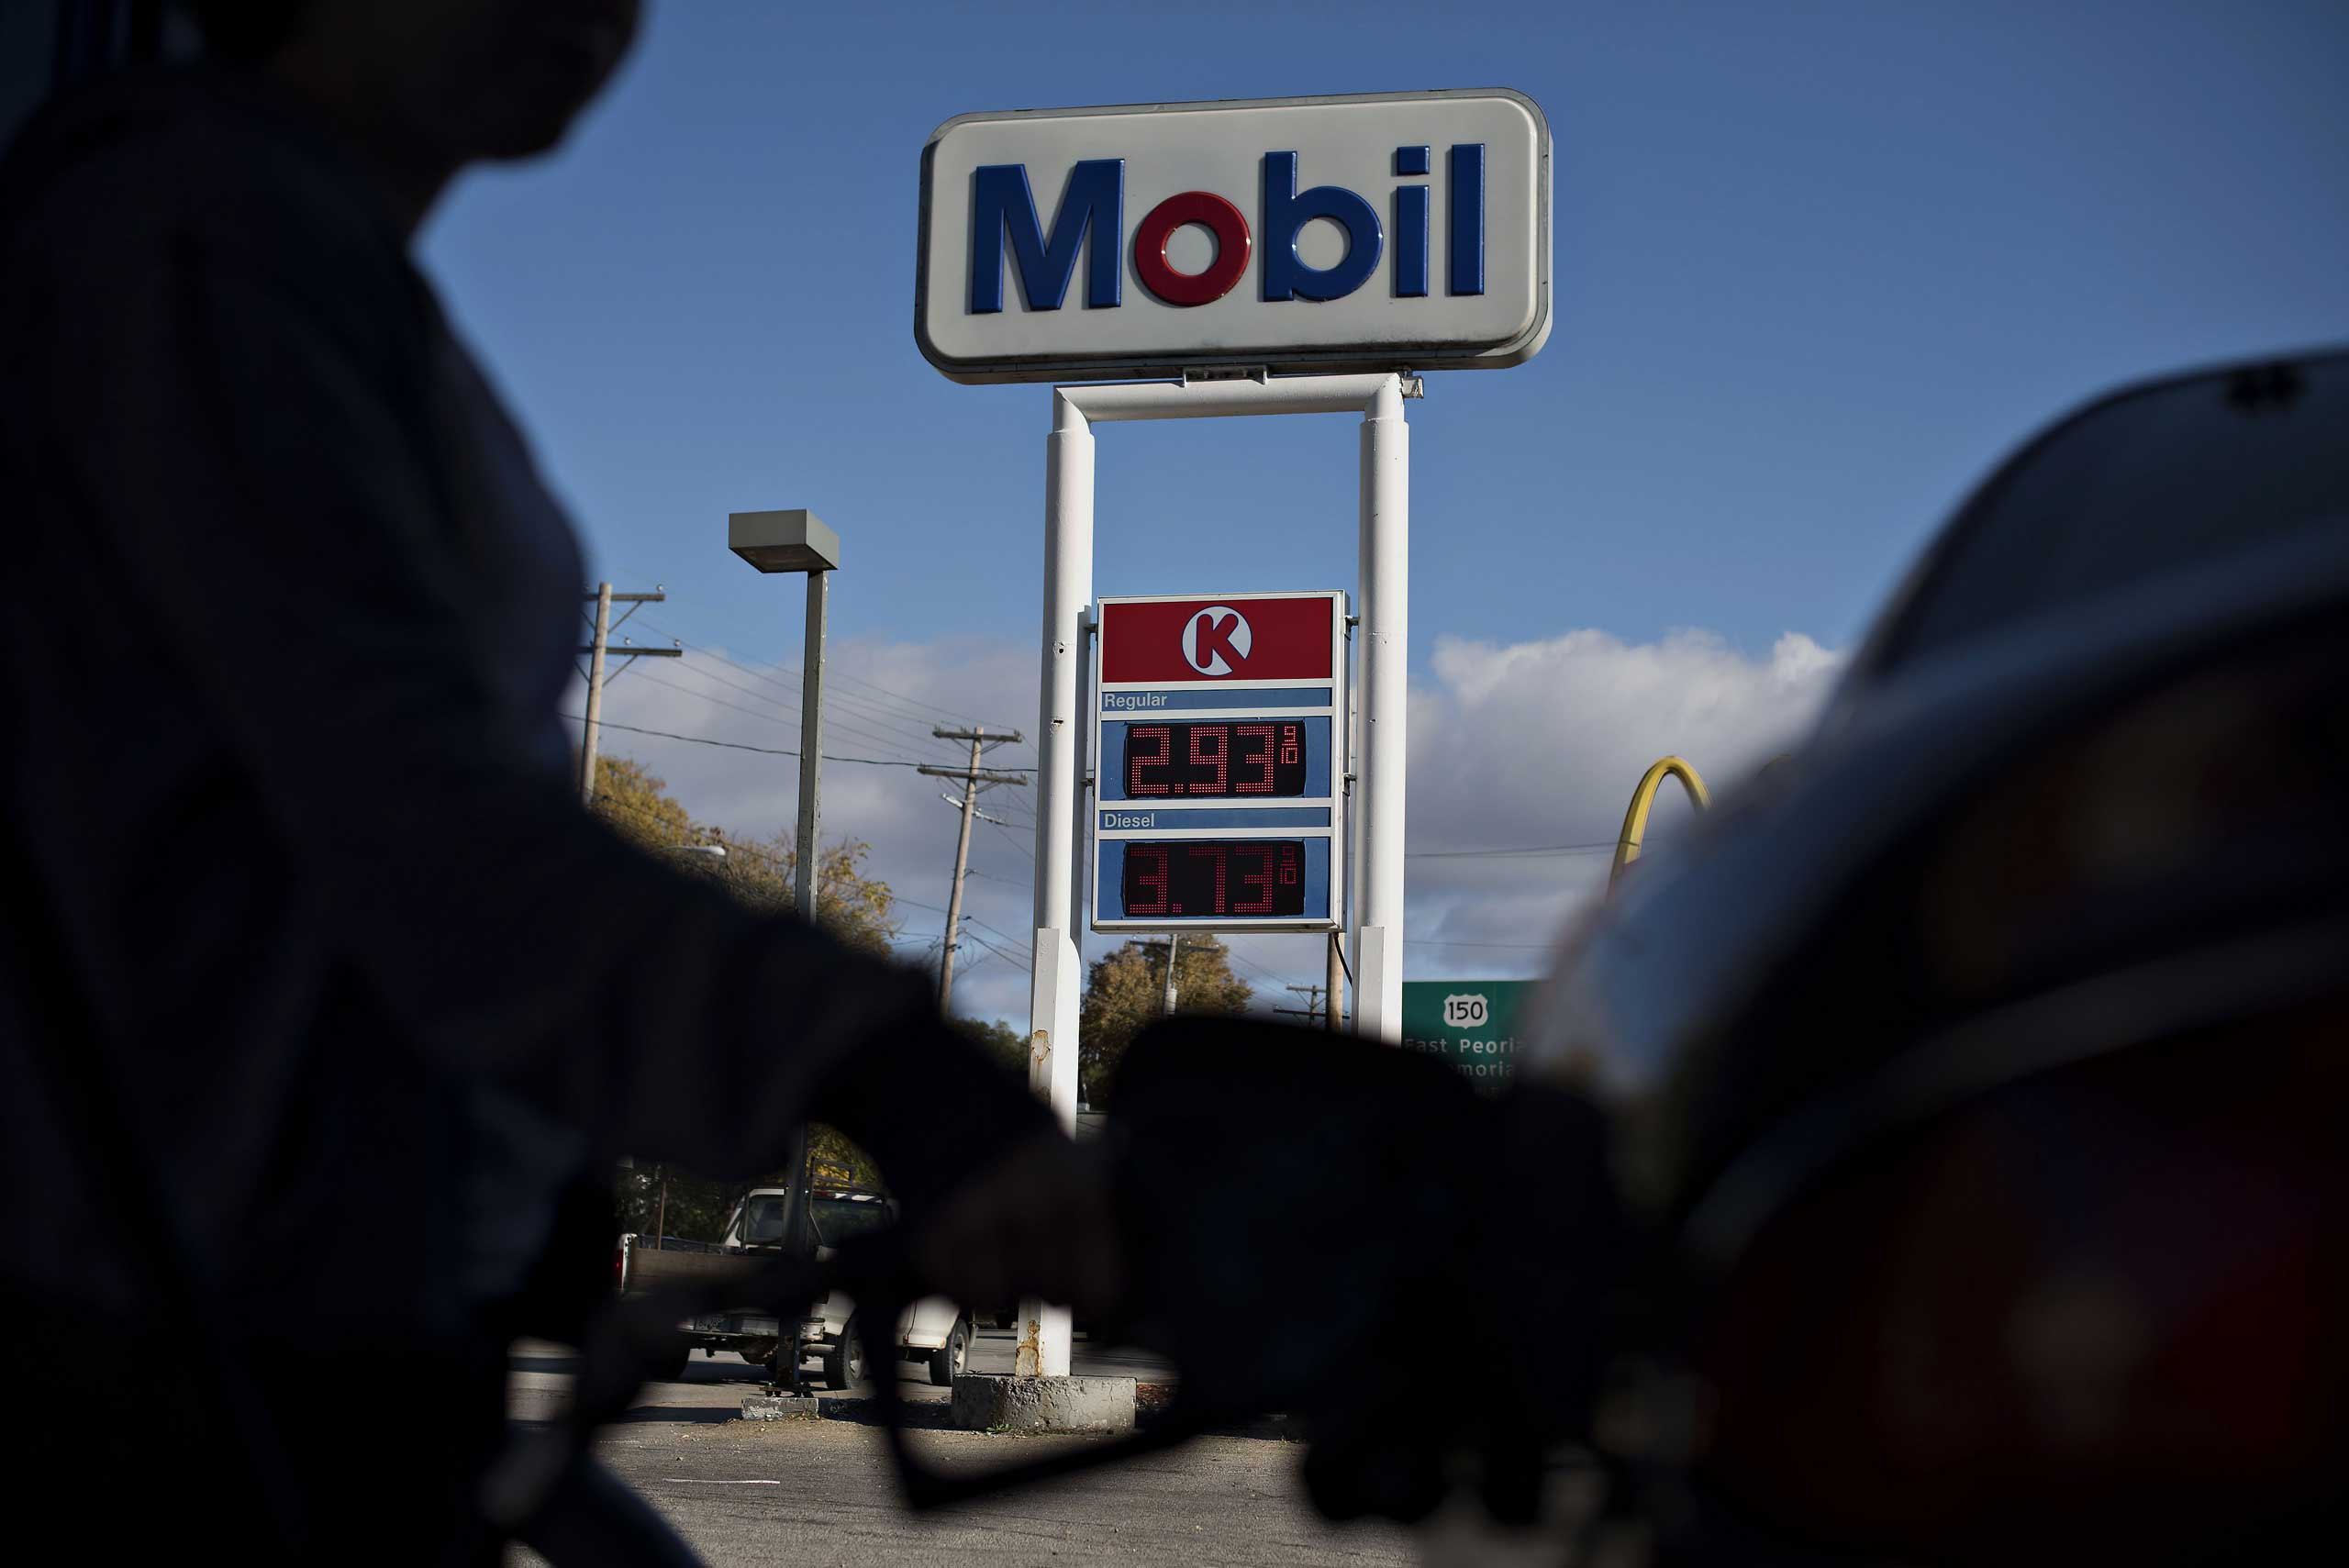 Gas prices are displayed as a customer fuels a vehicle at a Mobil gas station in Peoria, Illinois, U.S., on Oct. 29, 2014.